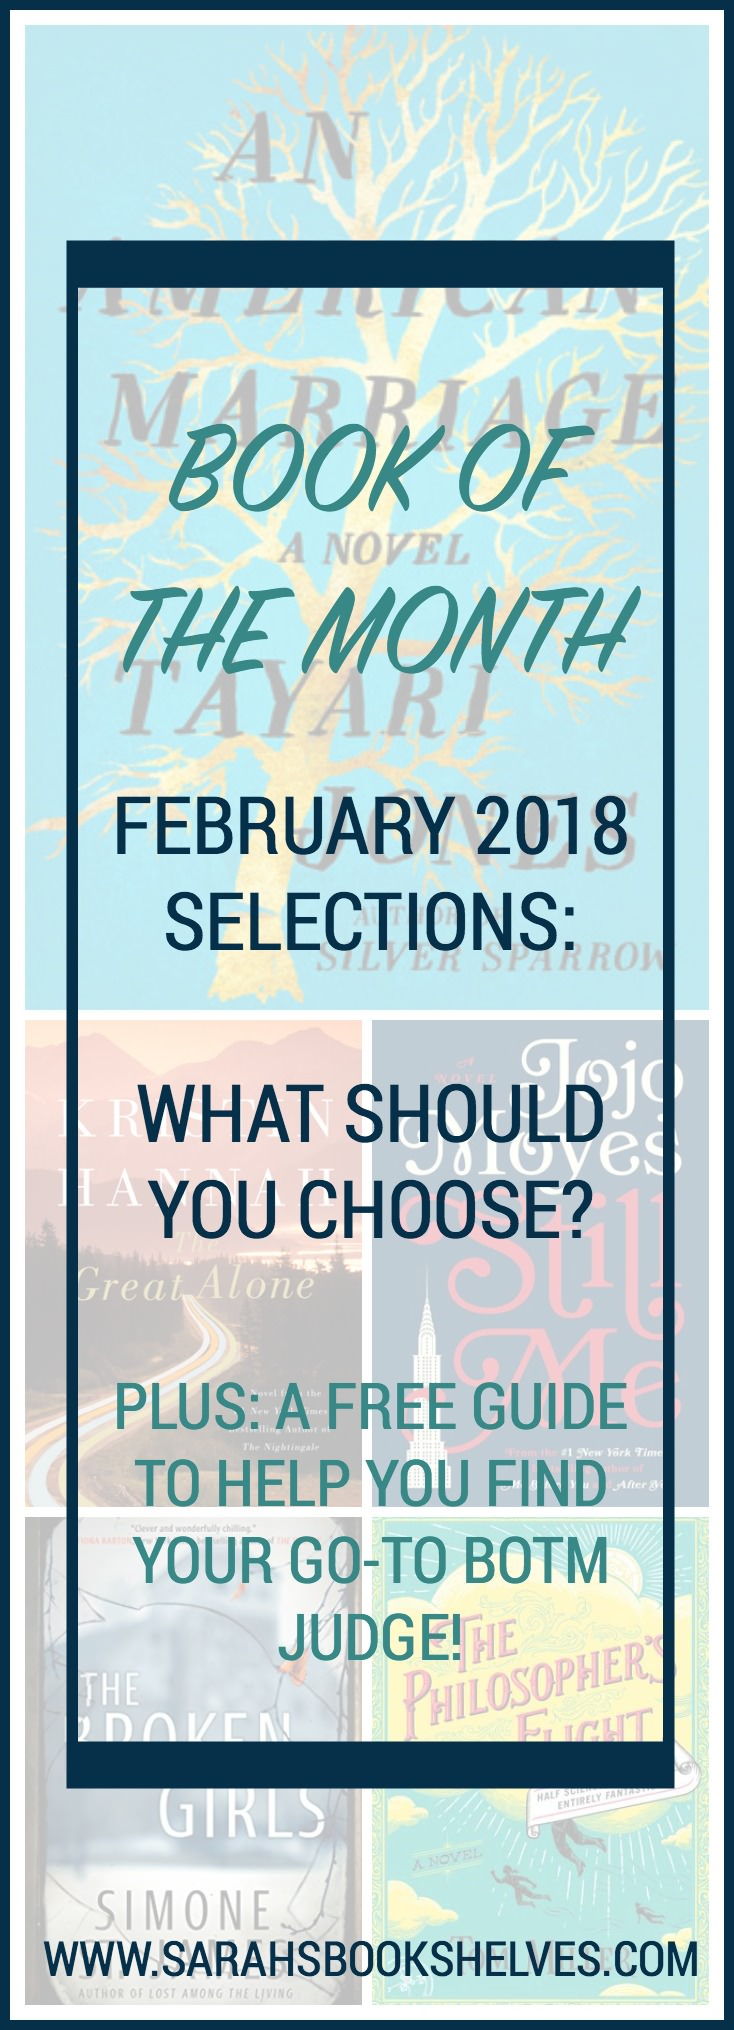 Book of the Month February 2018 selections are out and I've got commentary on all the books, plus a free guide to find YOUR go-to BOTM judge! #reading #book #bookish #bookworms #booklovers #BOTM